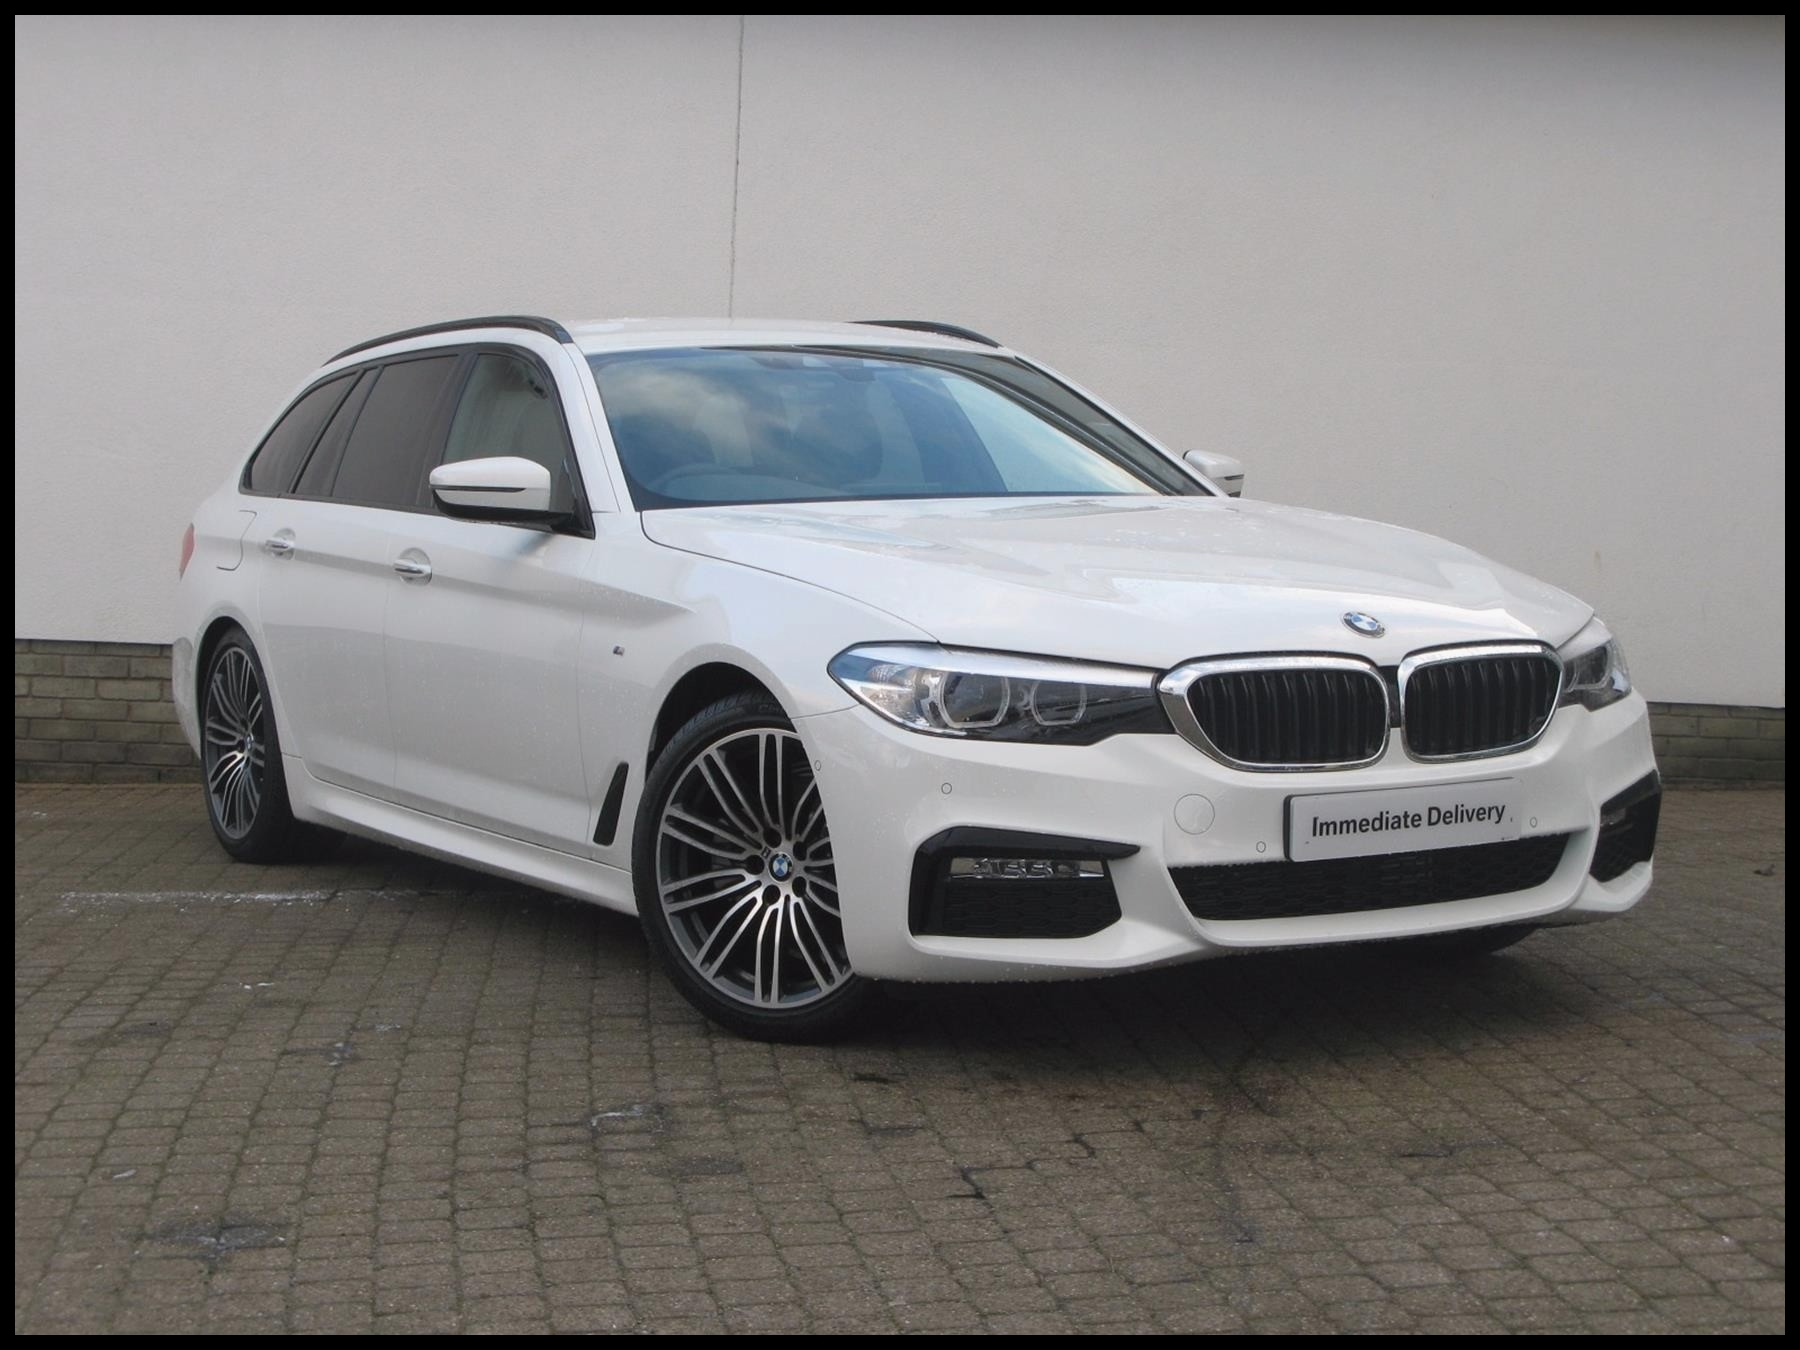 Bmw 525i for Sale Used Unique Stylish Used 2017 Bmw 5 Series G31 520d M Sport